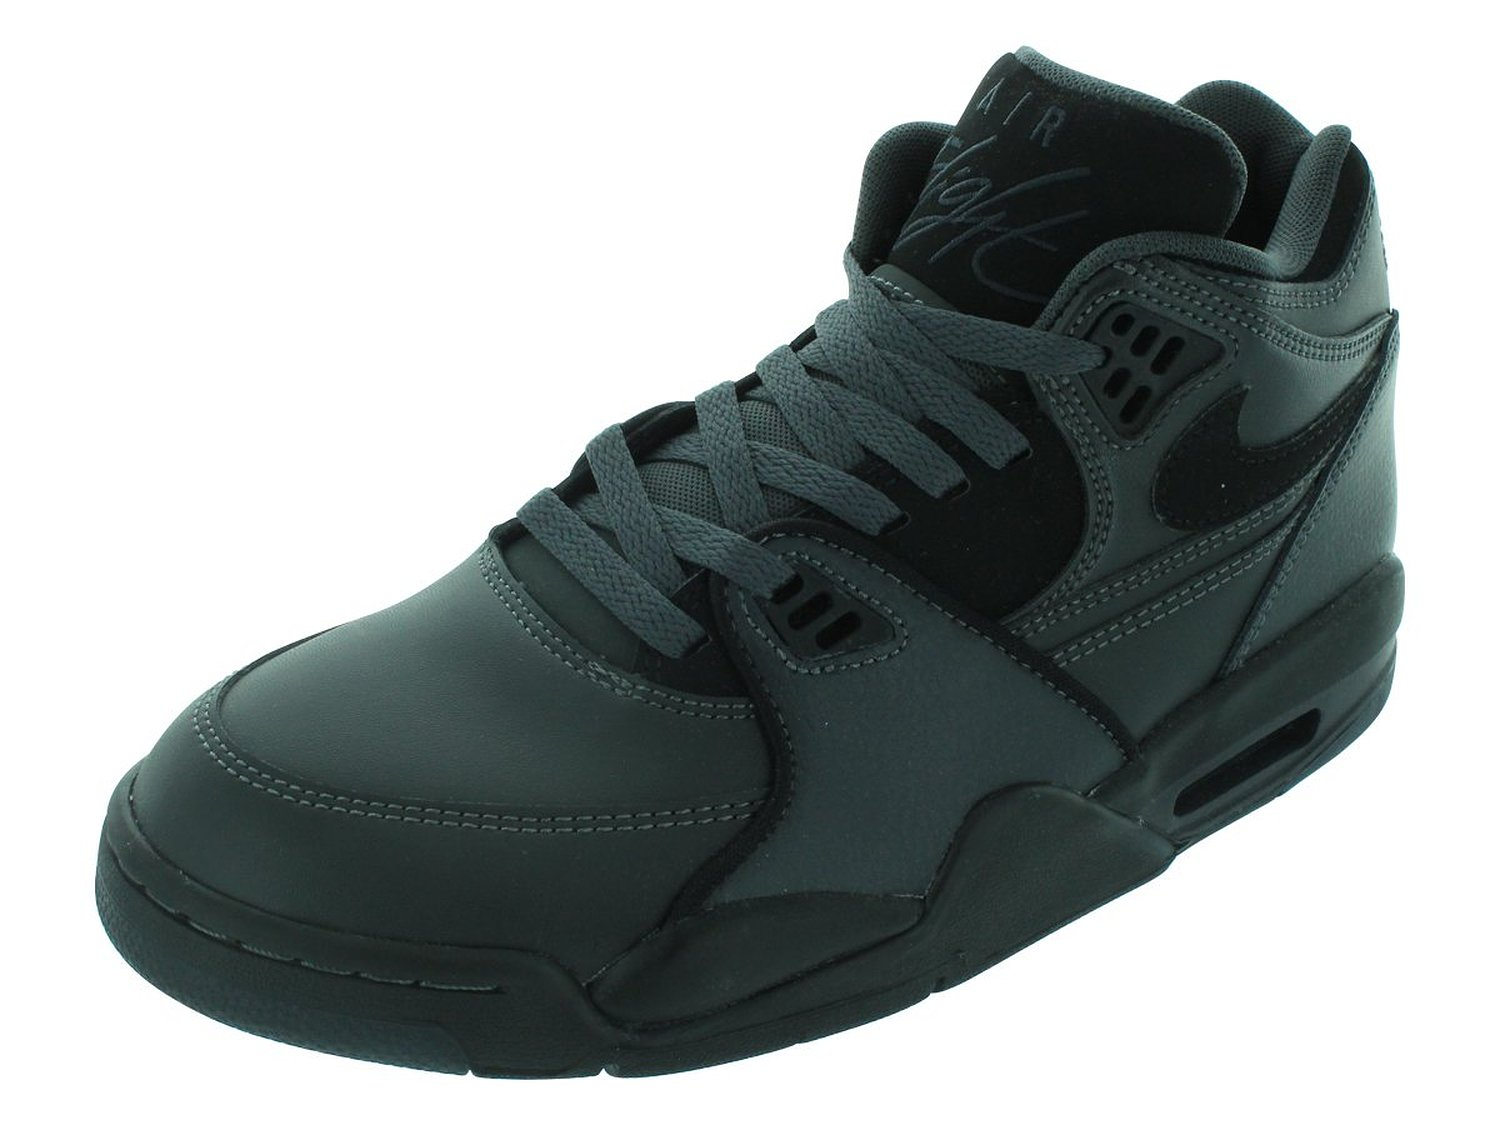 separation shoes ca9d8 4f74e Get Quotations · Nike Air Flight 89 Mens Basketball Shoes 306252-007